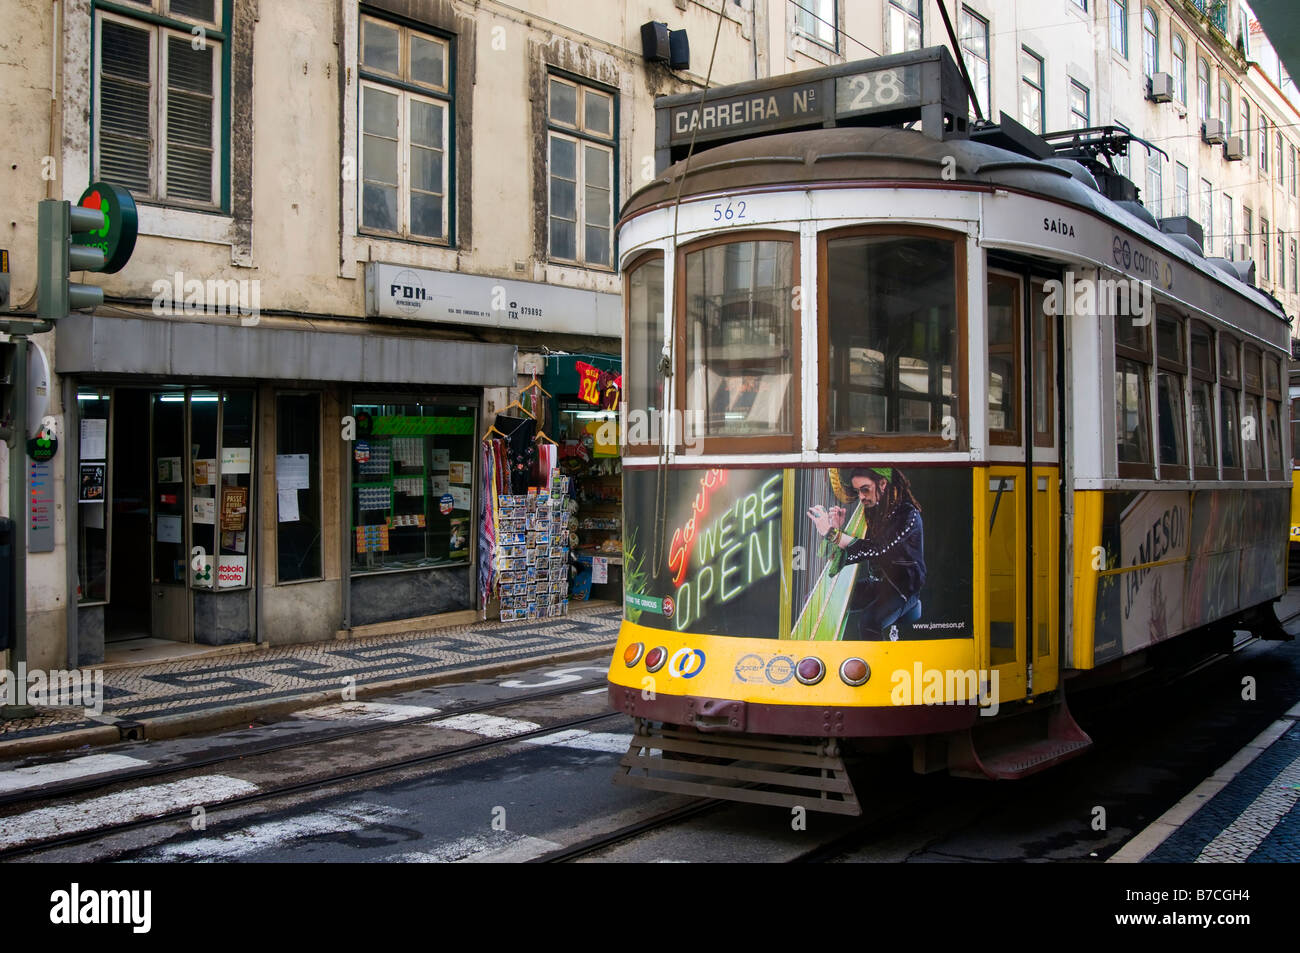 Tram in the streets of  Lisbon city centre - Stock Image